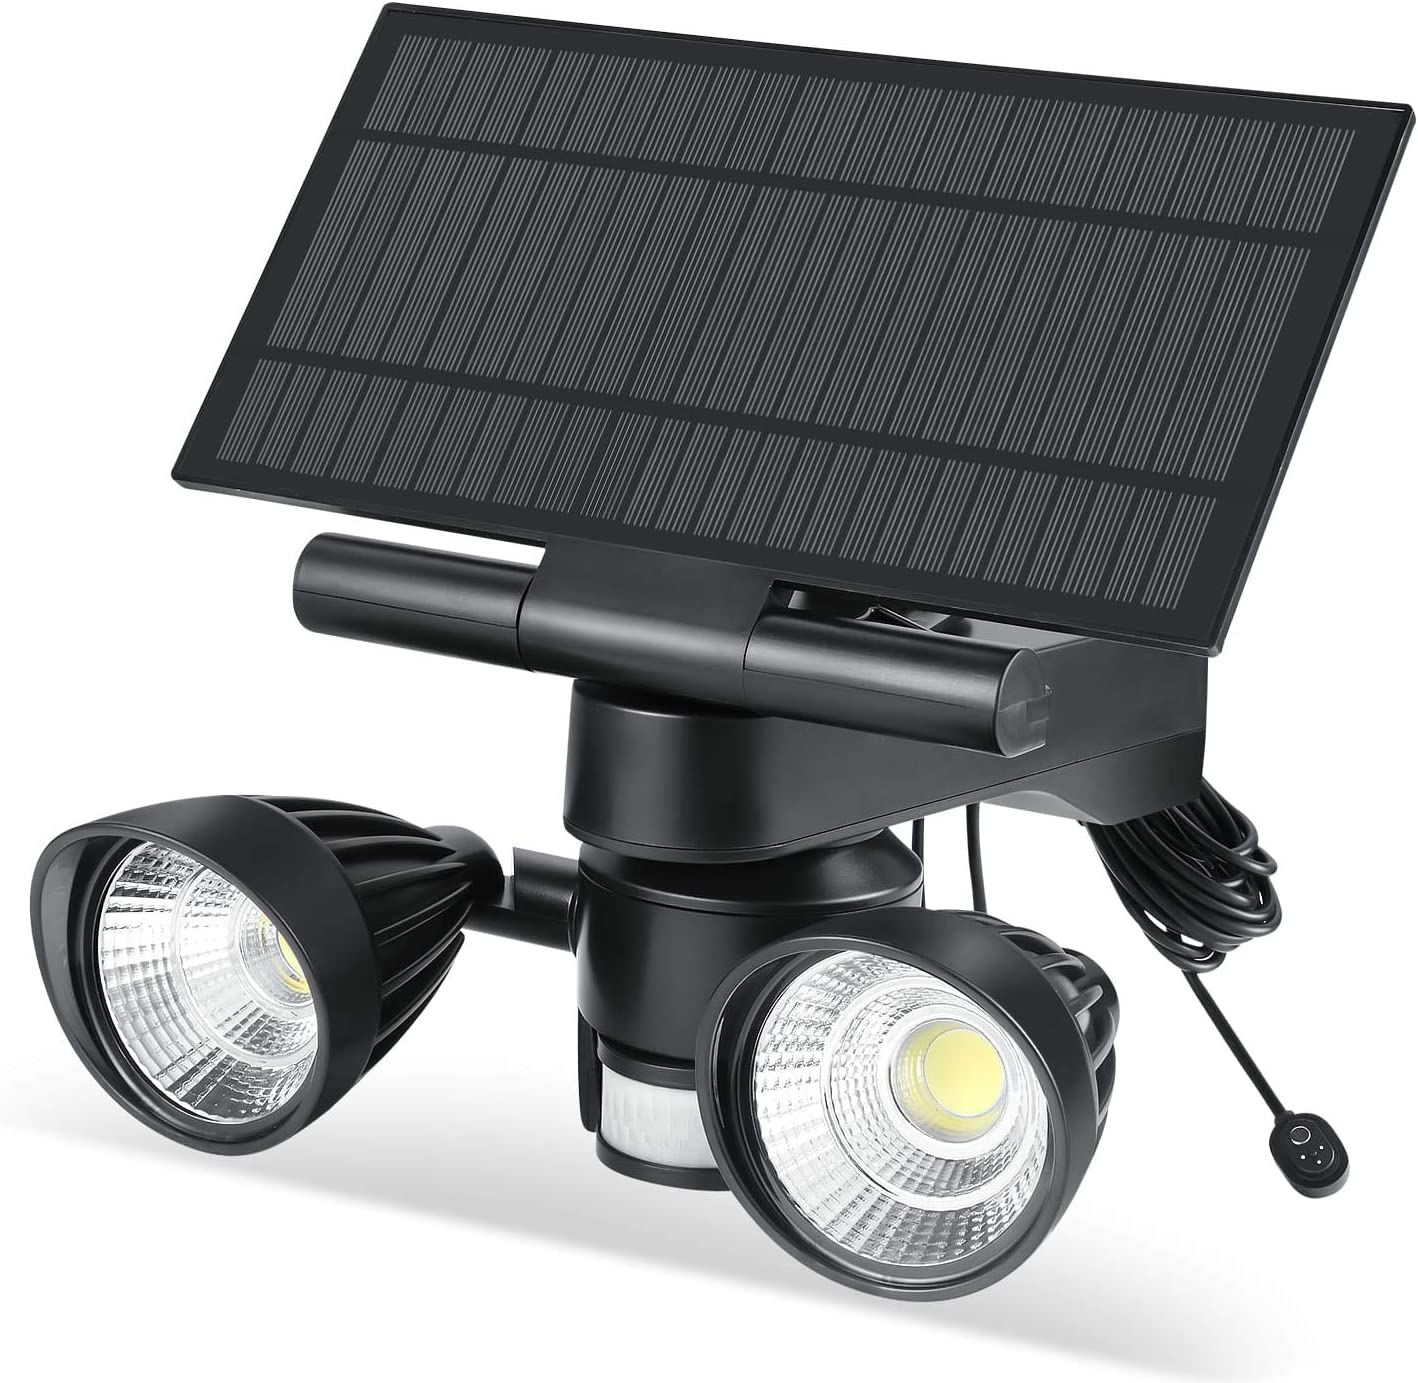 Popular Recommendation products Wasserstein Floodlight Solar Panel Motion-Activated Charger